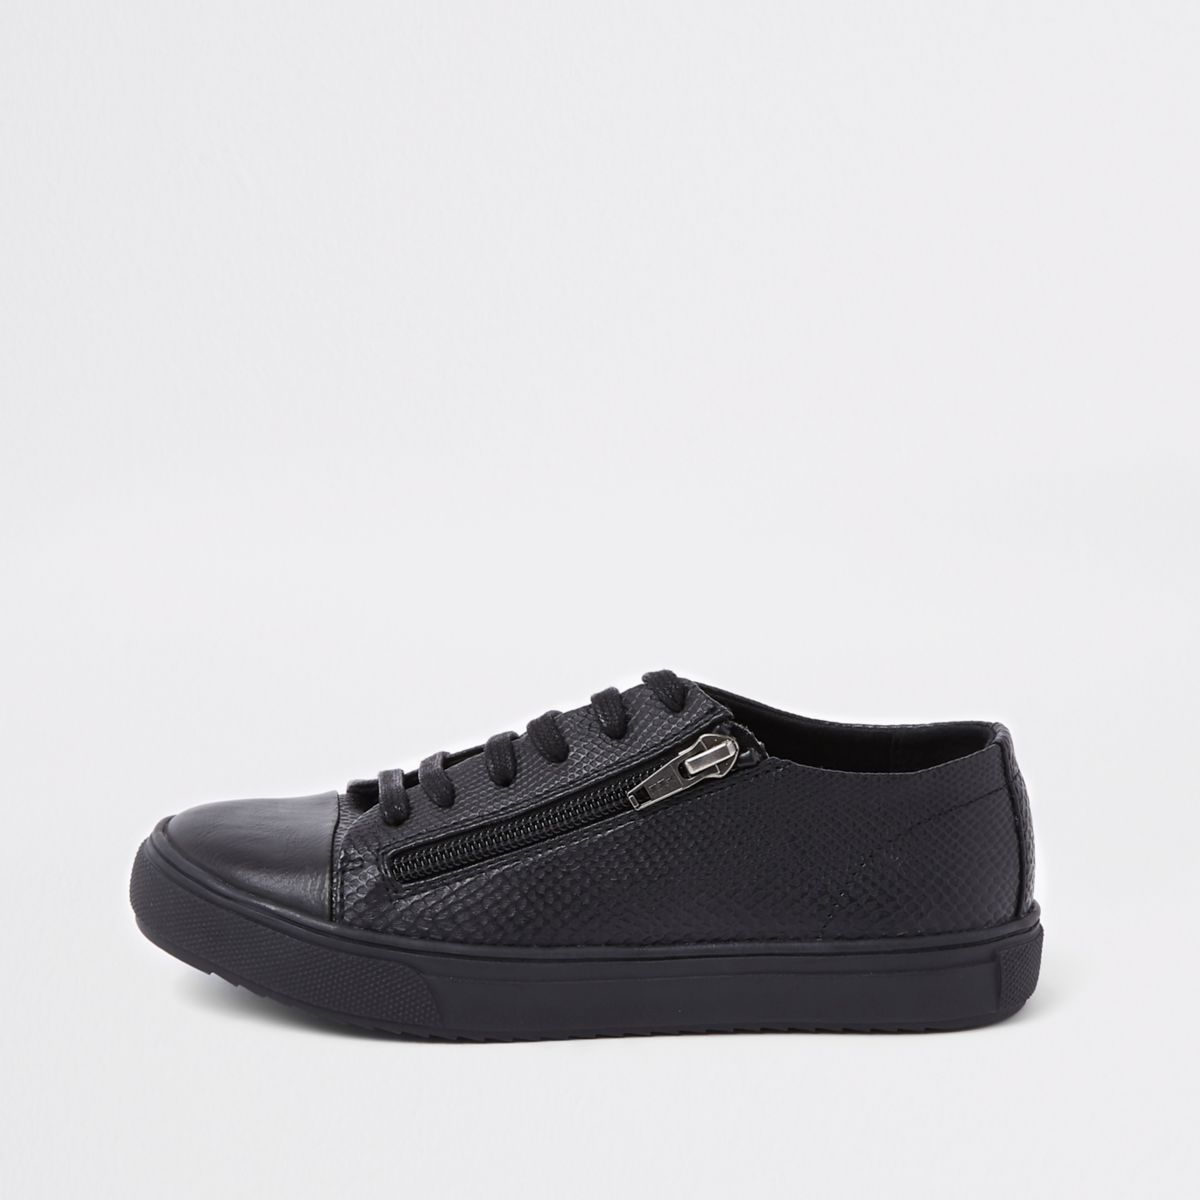 Boys black sole zip side lace-up sneakers